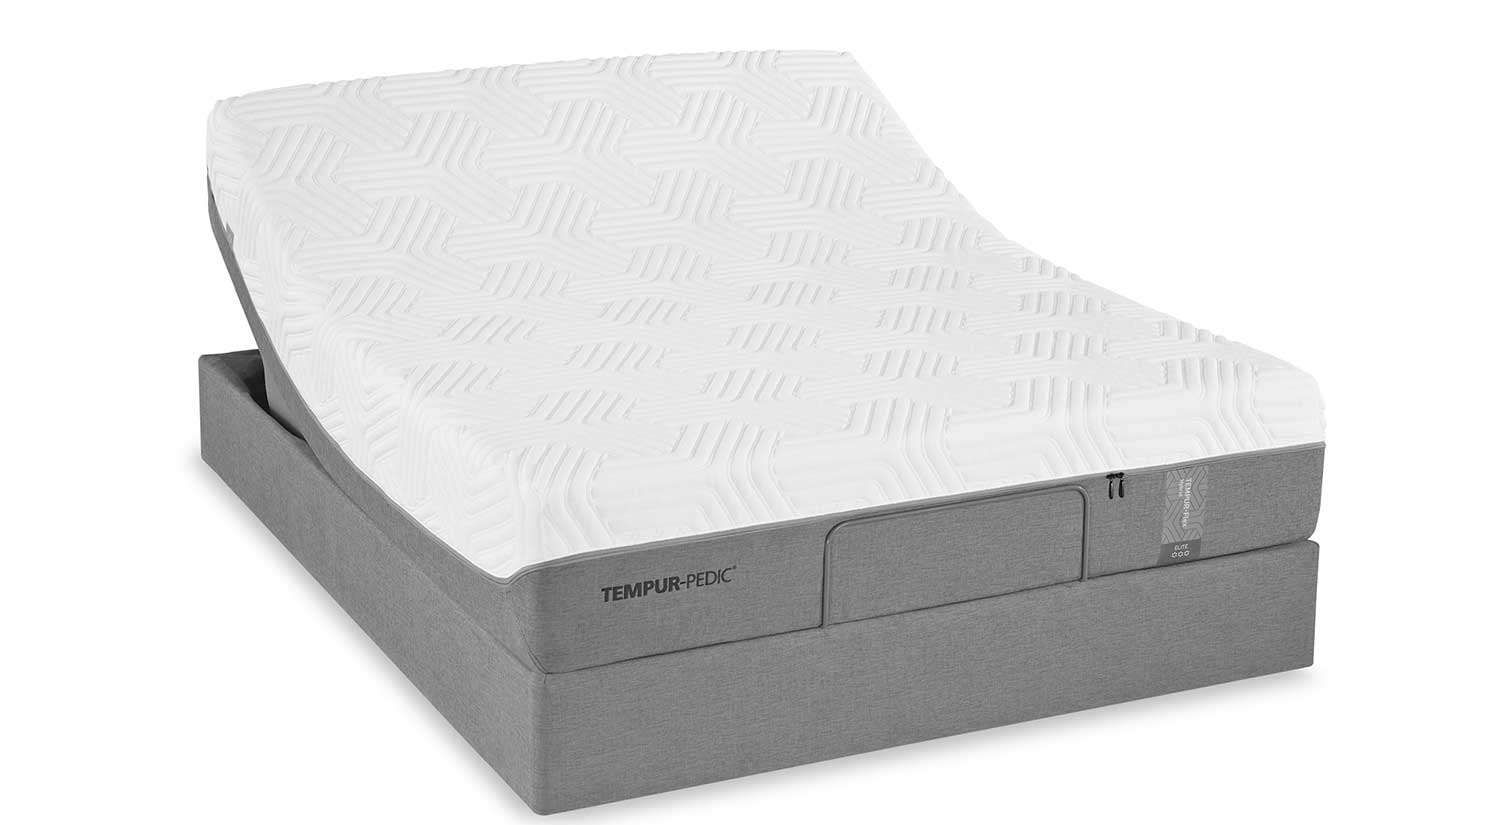 Circle furniture xl twin flex elite mattress and up foundation Twin mattress xl